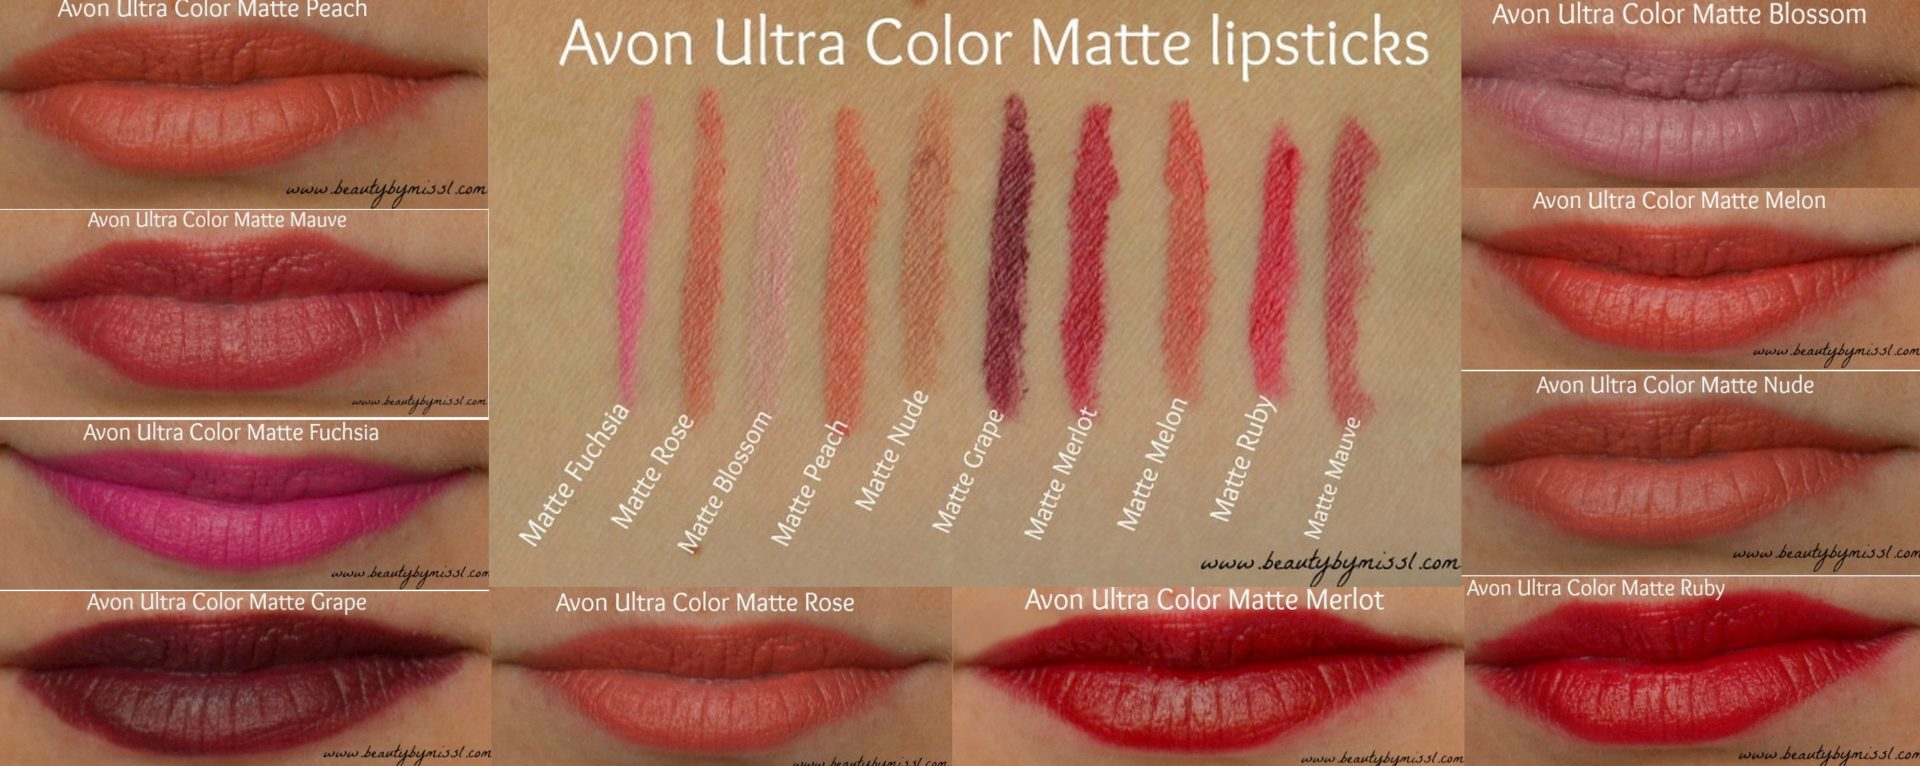 Avon Ultra Color Matte Lipstick Swatches Beauty By Miss L